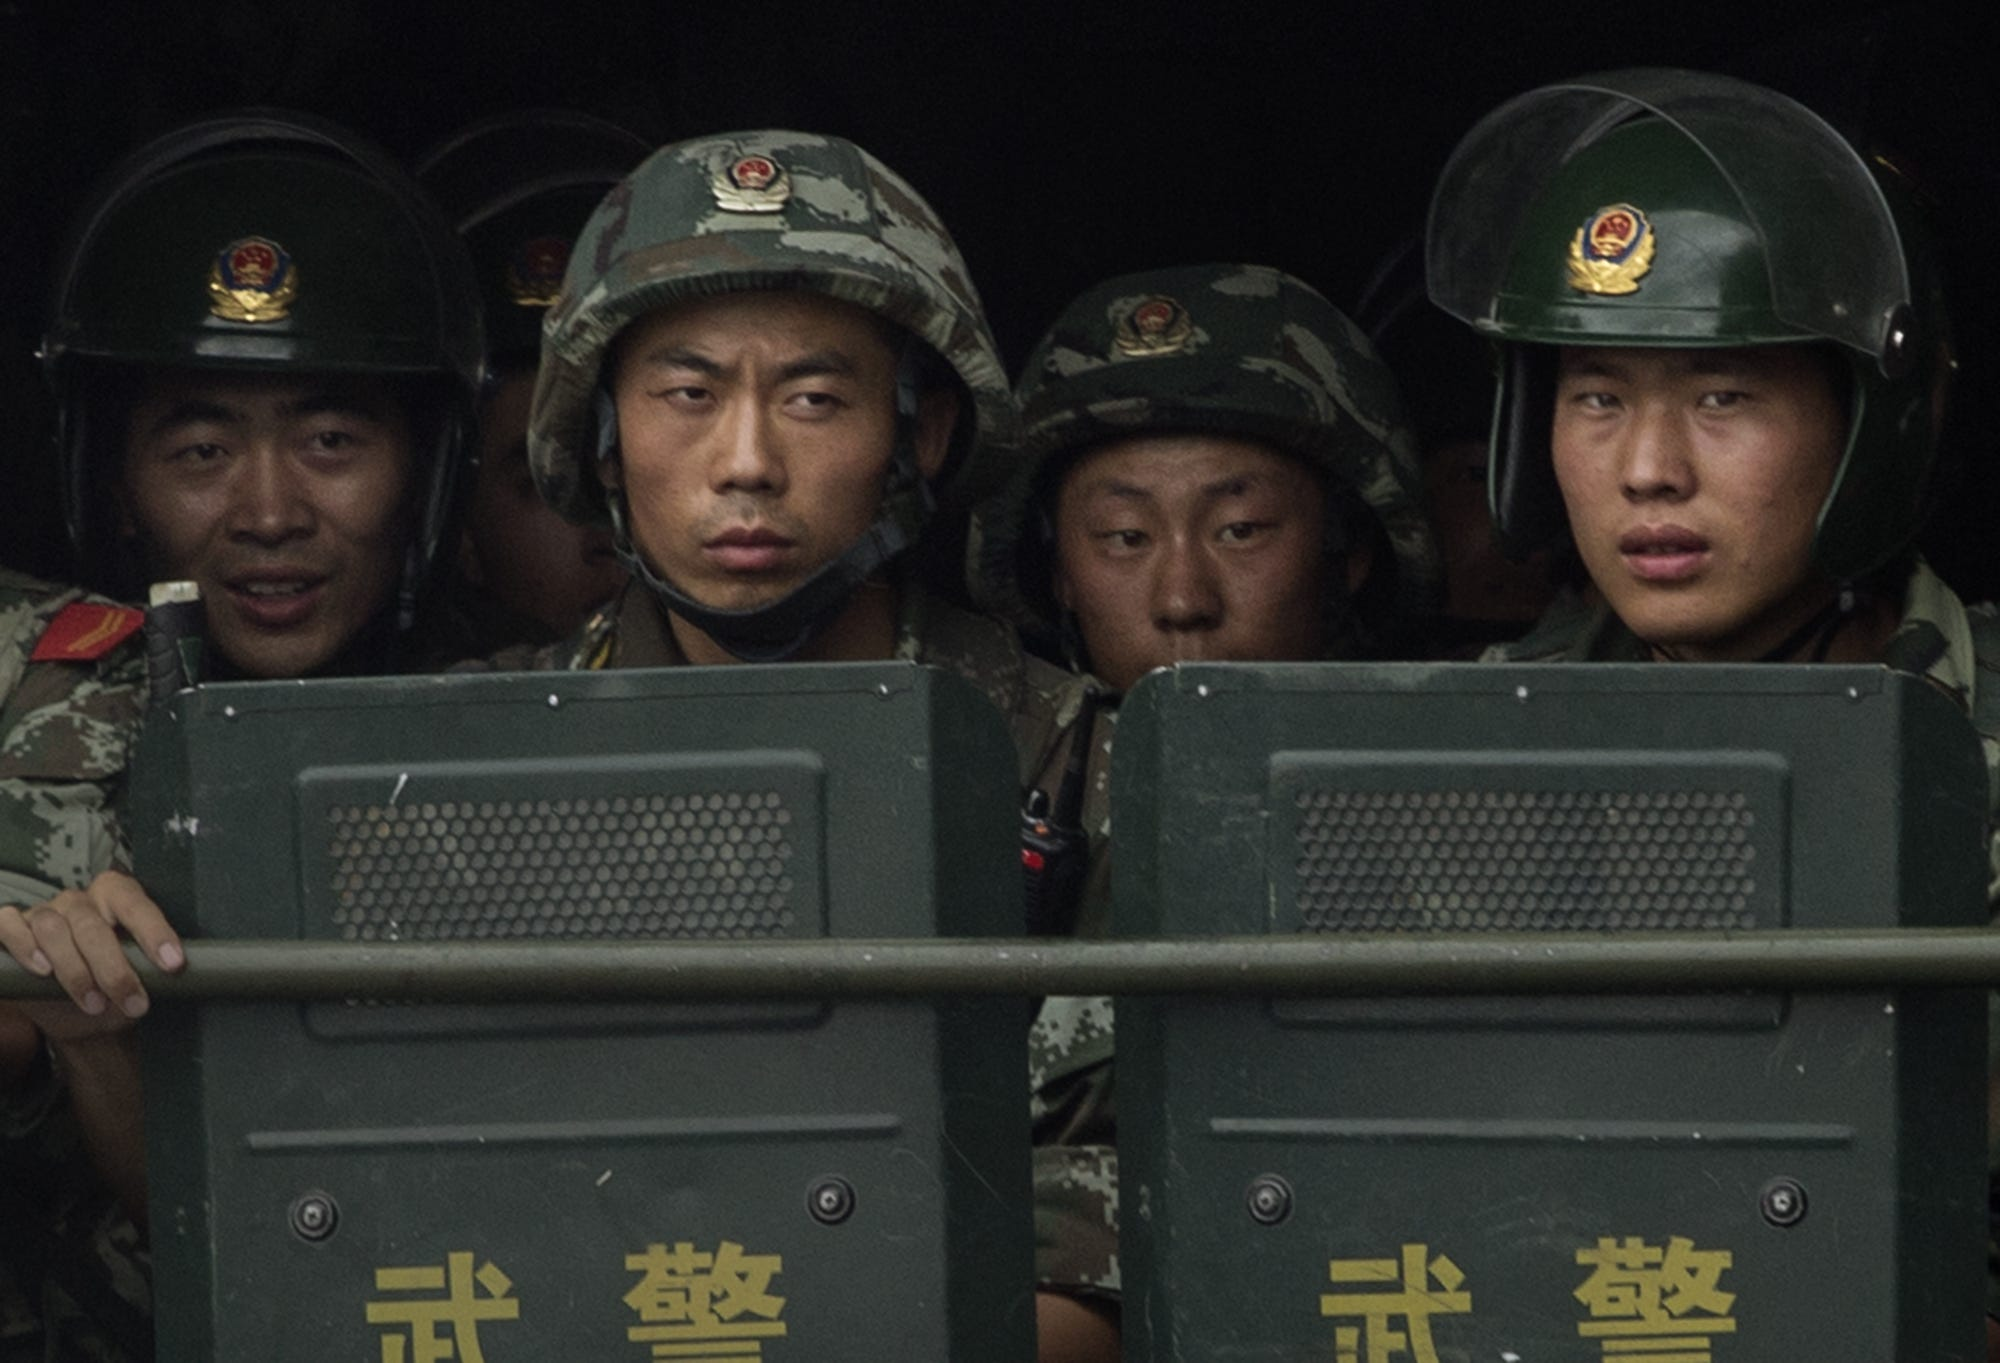 Chinese soldiers ride on the back of a truck as they patrol outside the Id Kah Mosque, China's largest, on July 31, 2014 in Kashgar, China. China has increased security in many parts of the restive Xinjiang province following some of the worst violence in months in the Uyghur dominated area.